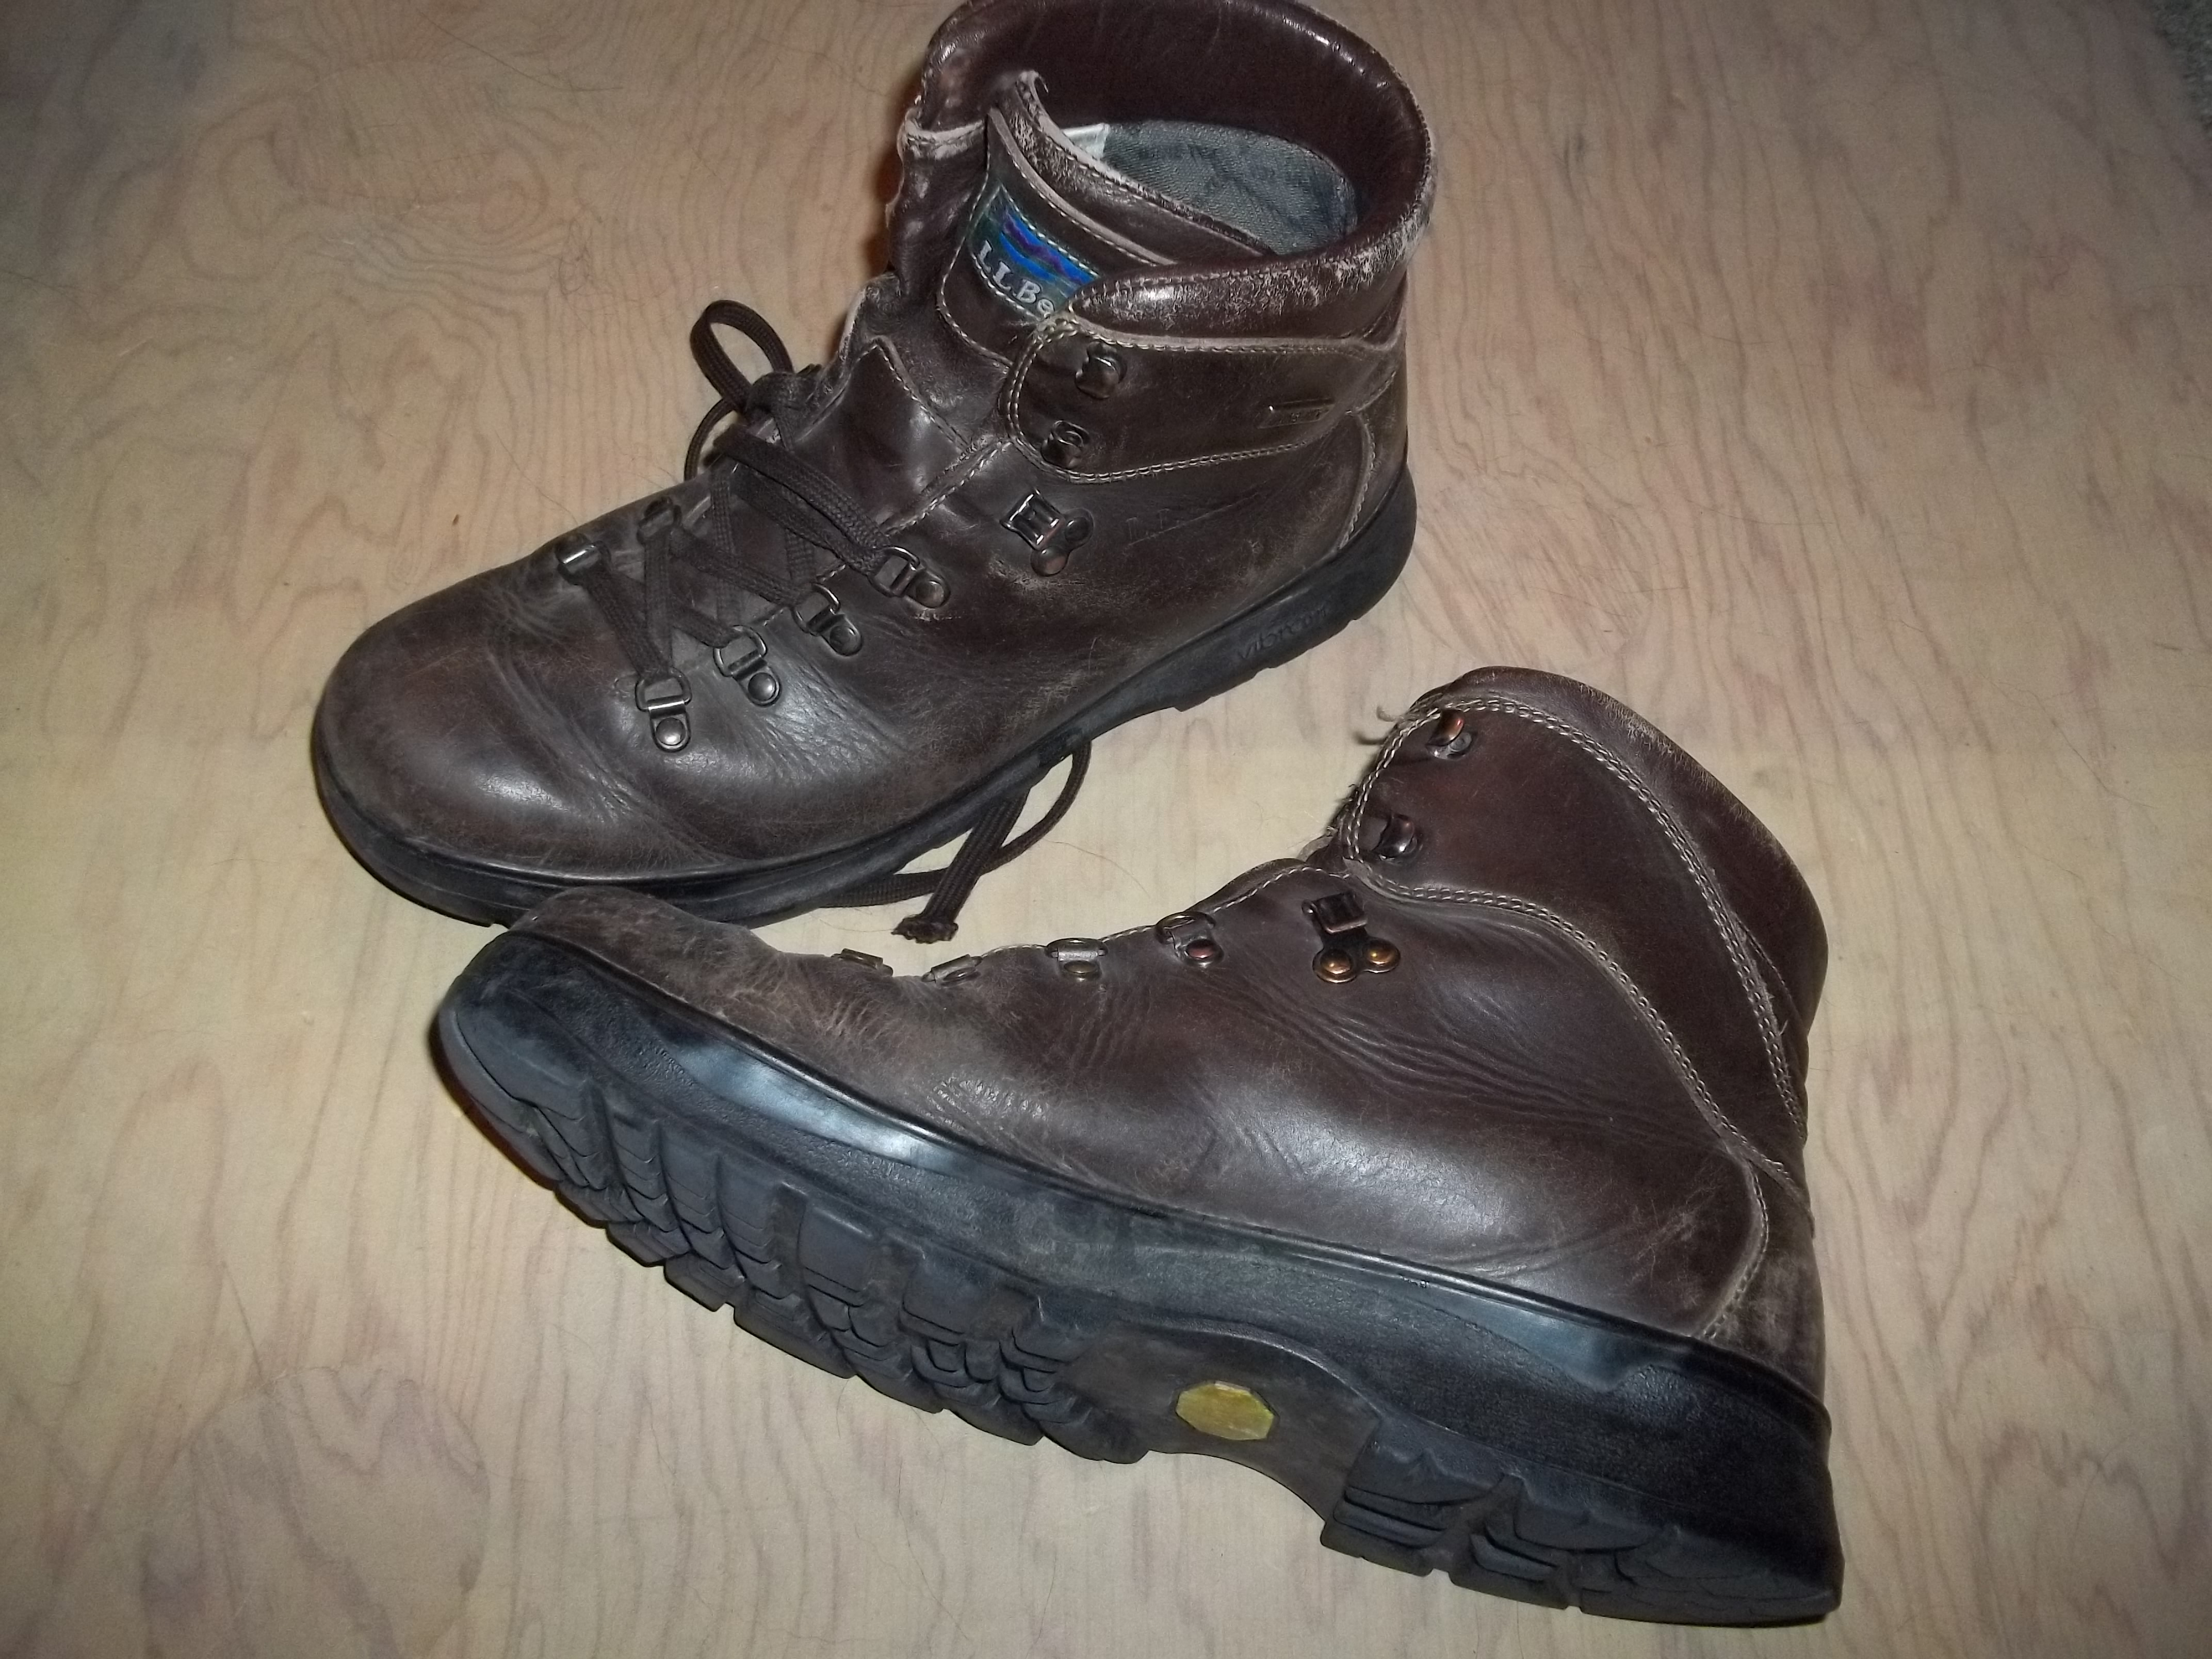 6a13818594e LL Bean boot care | His and Hers Homesteading